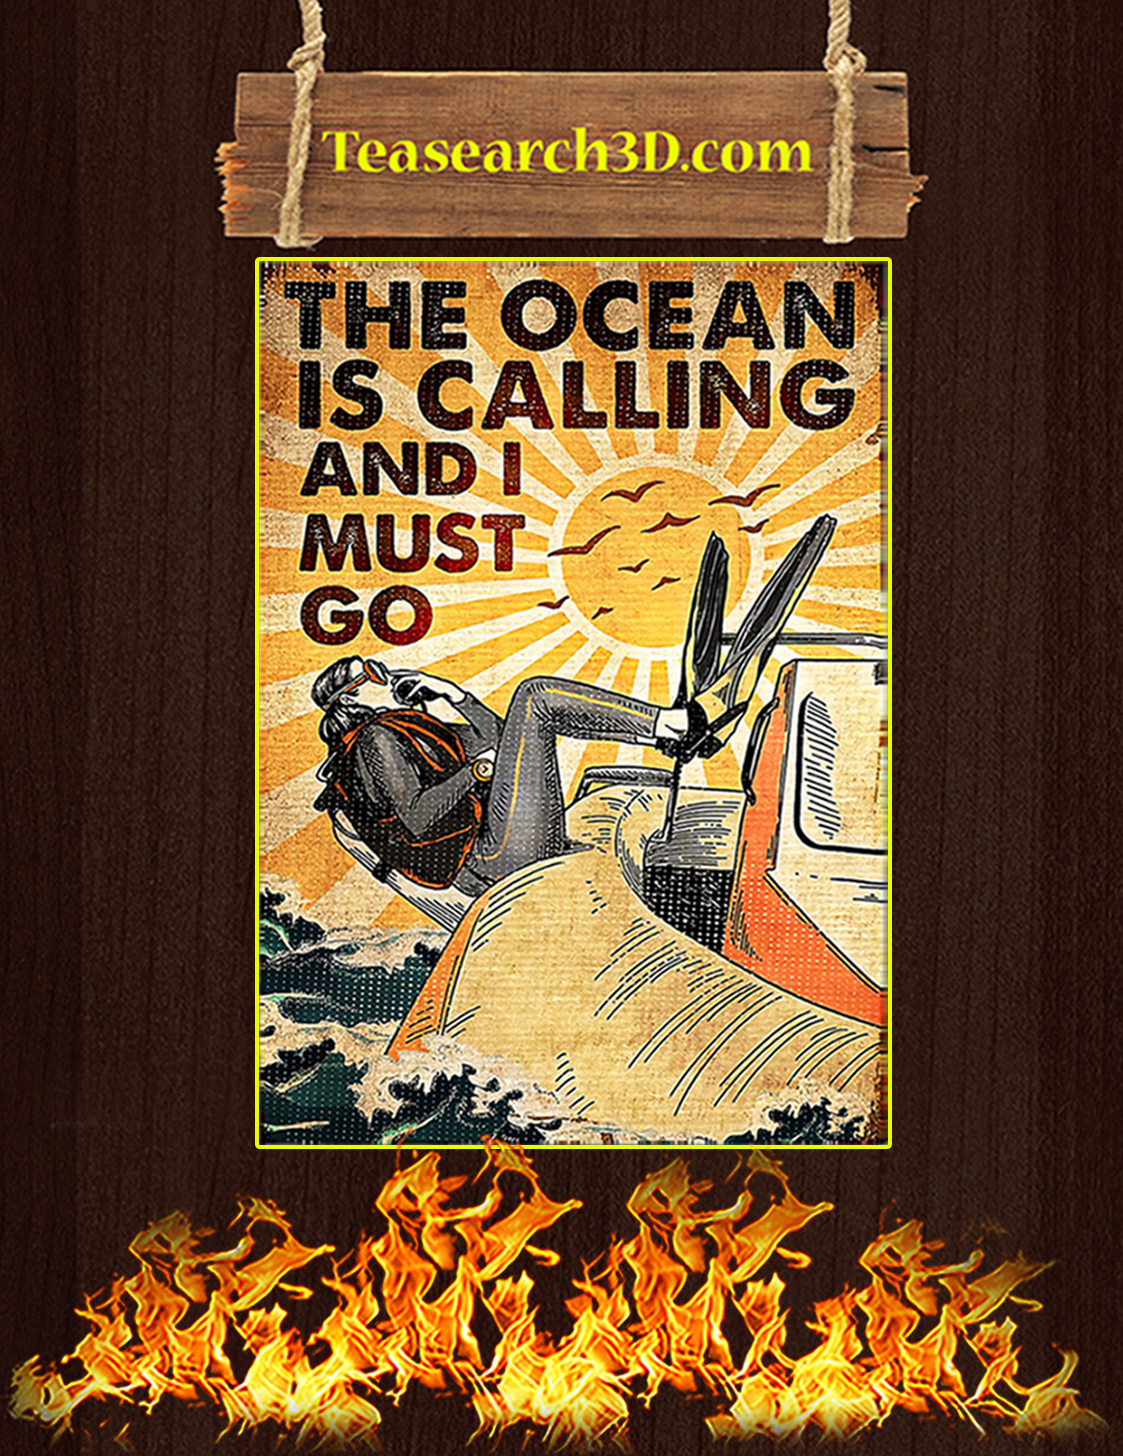 Scuba The ocean is calling and I must go poster A3